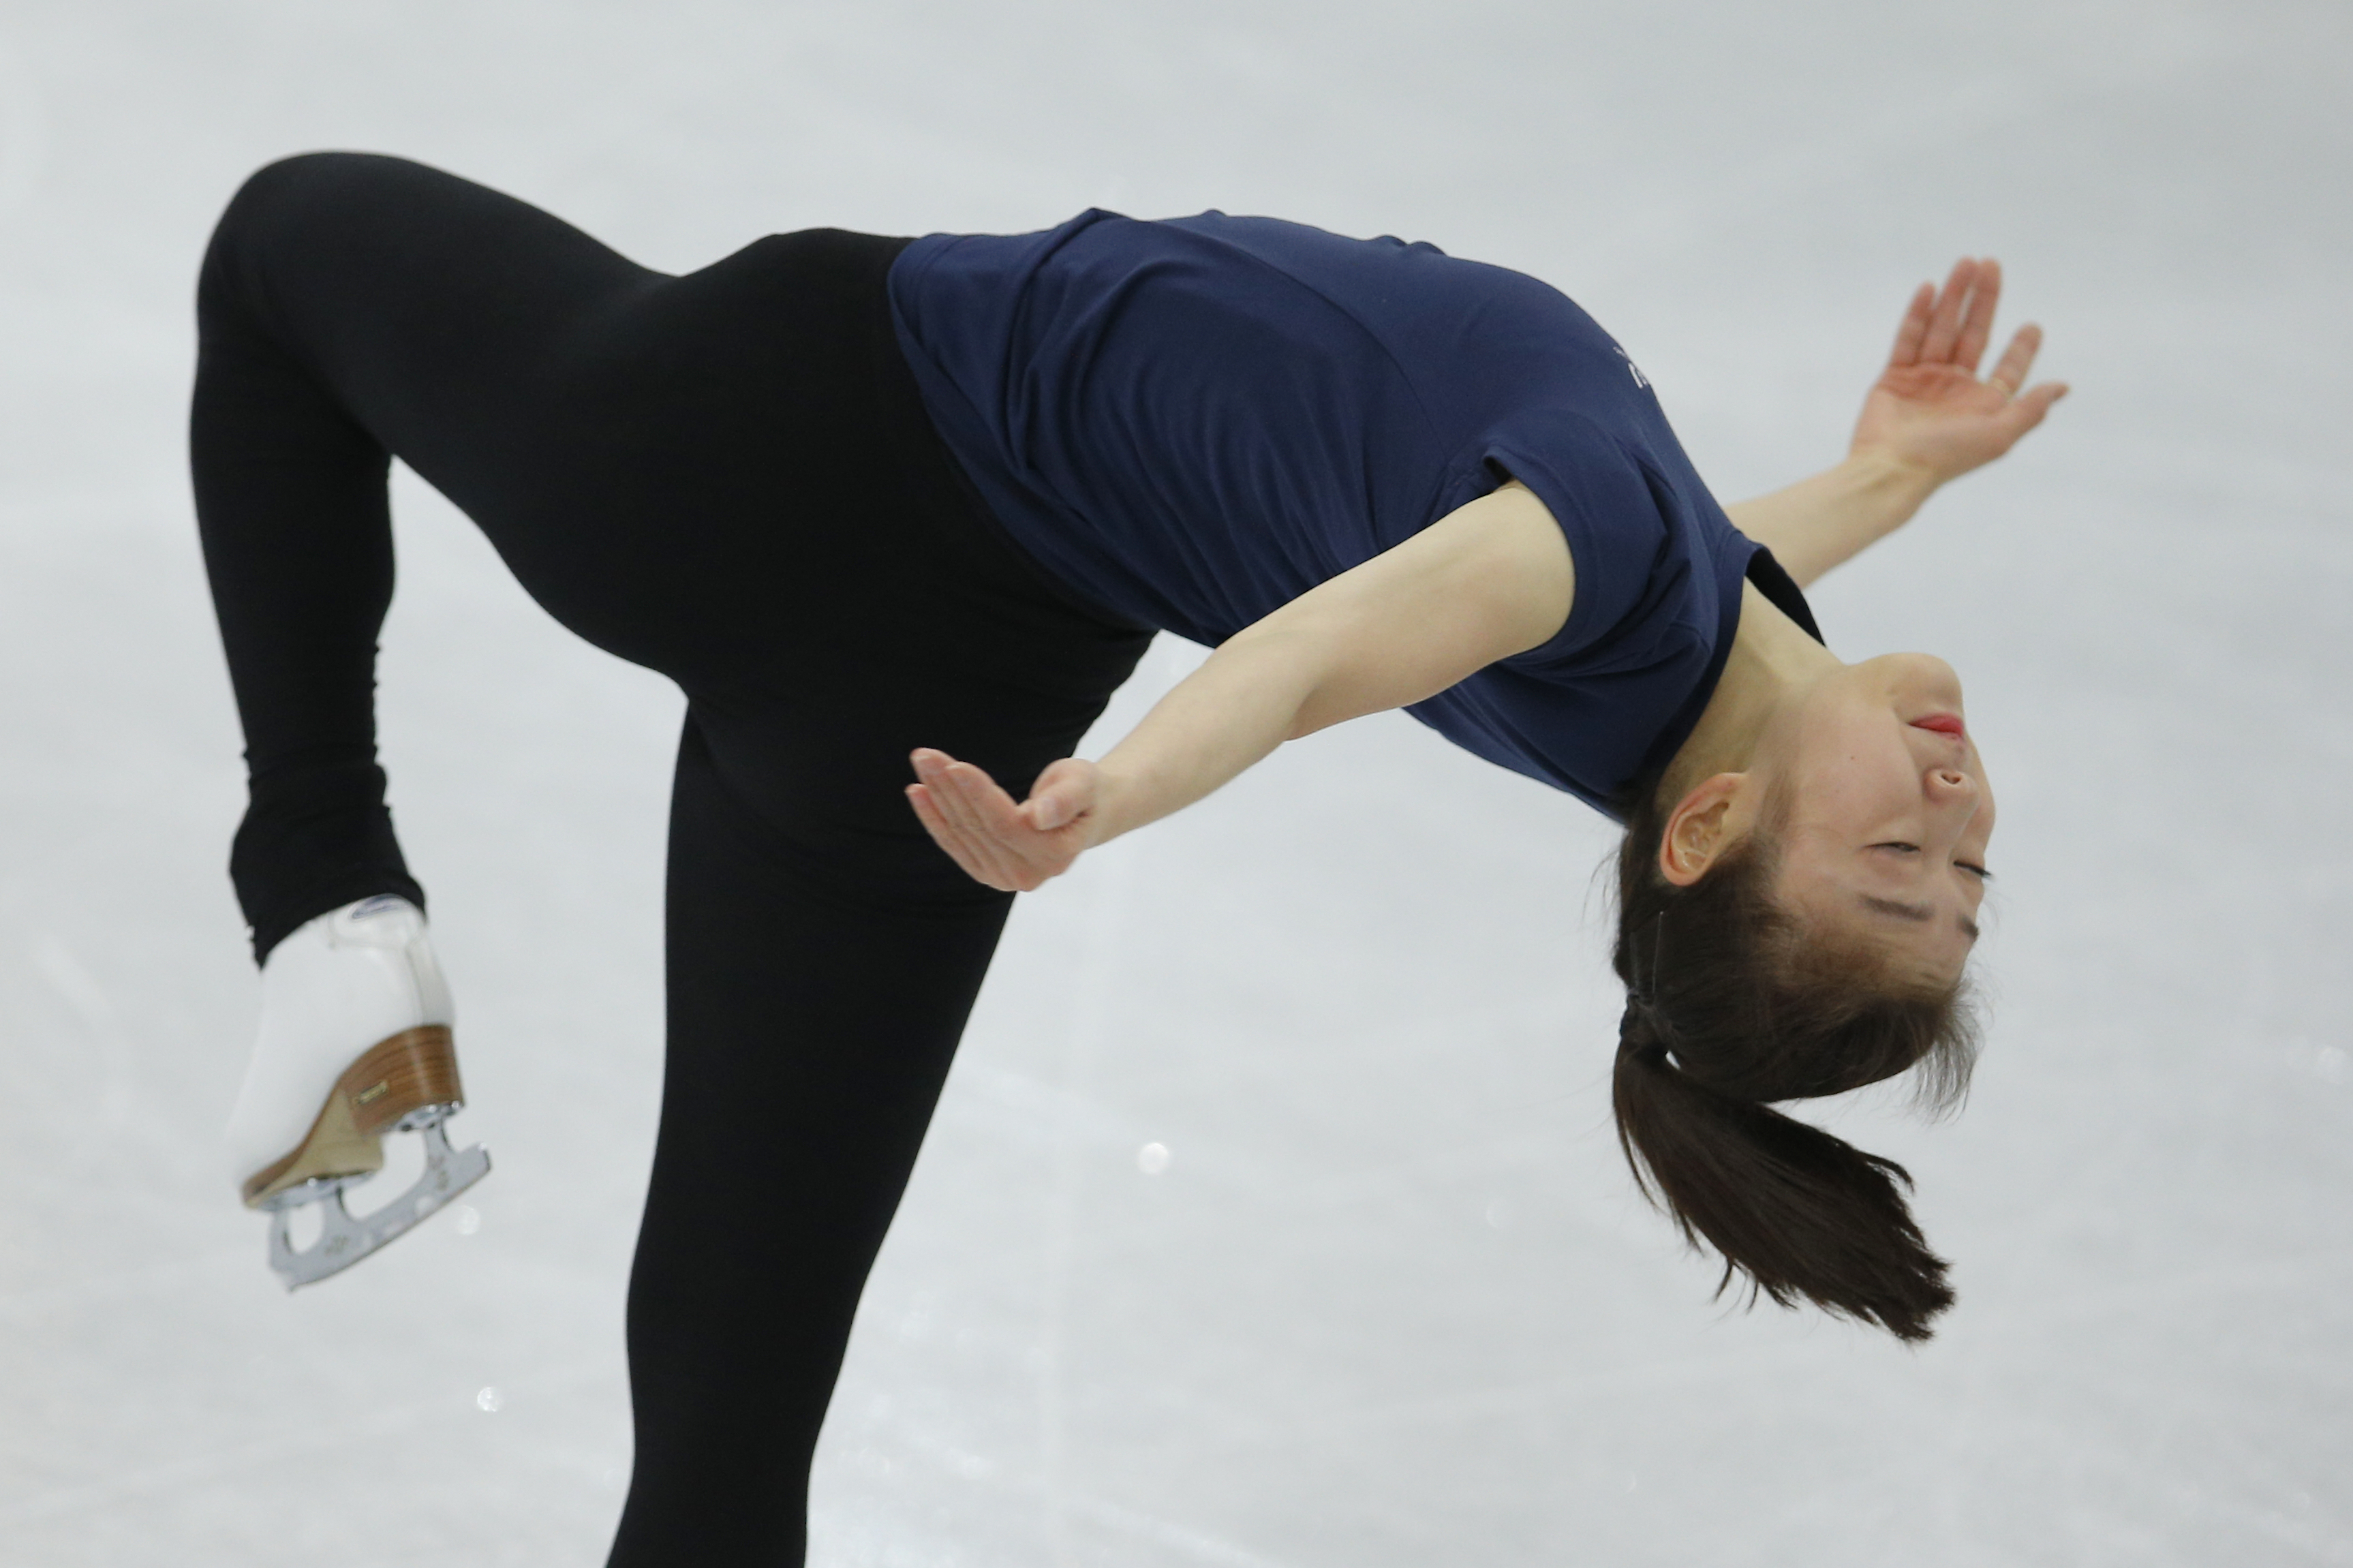 Yuna Kim of South Korea skates during a practice session at the figure stating practice rink at the 2014 Winter Olympics, Monday, Feb. 17, 2014, in Sochi, Russia. (AP Photo/Vadim Ghirda)